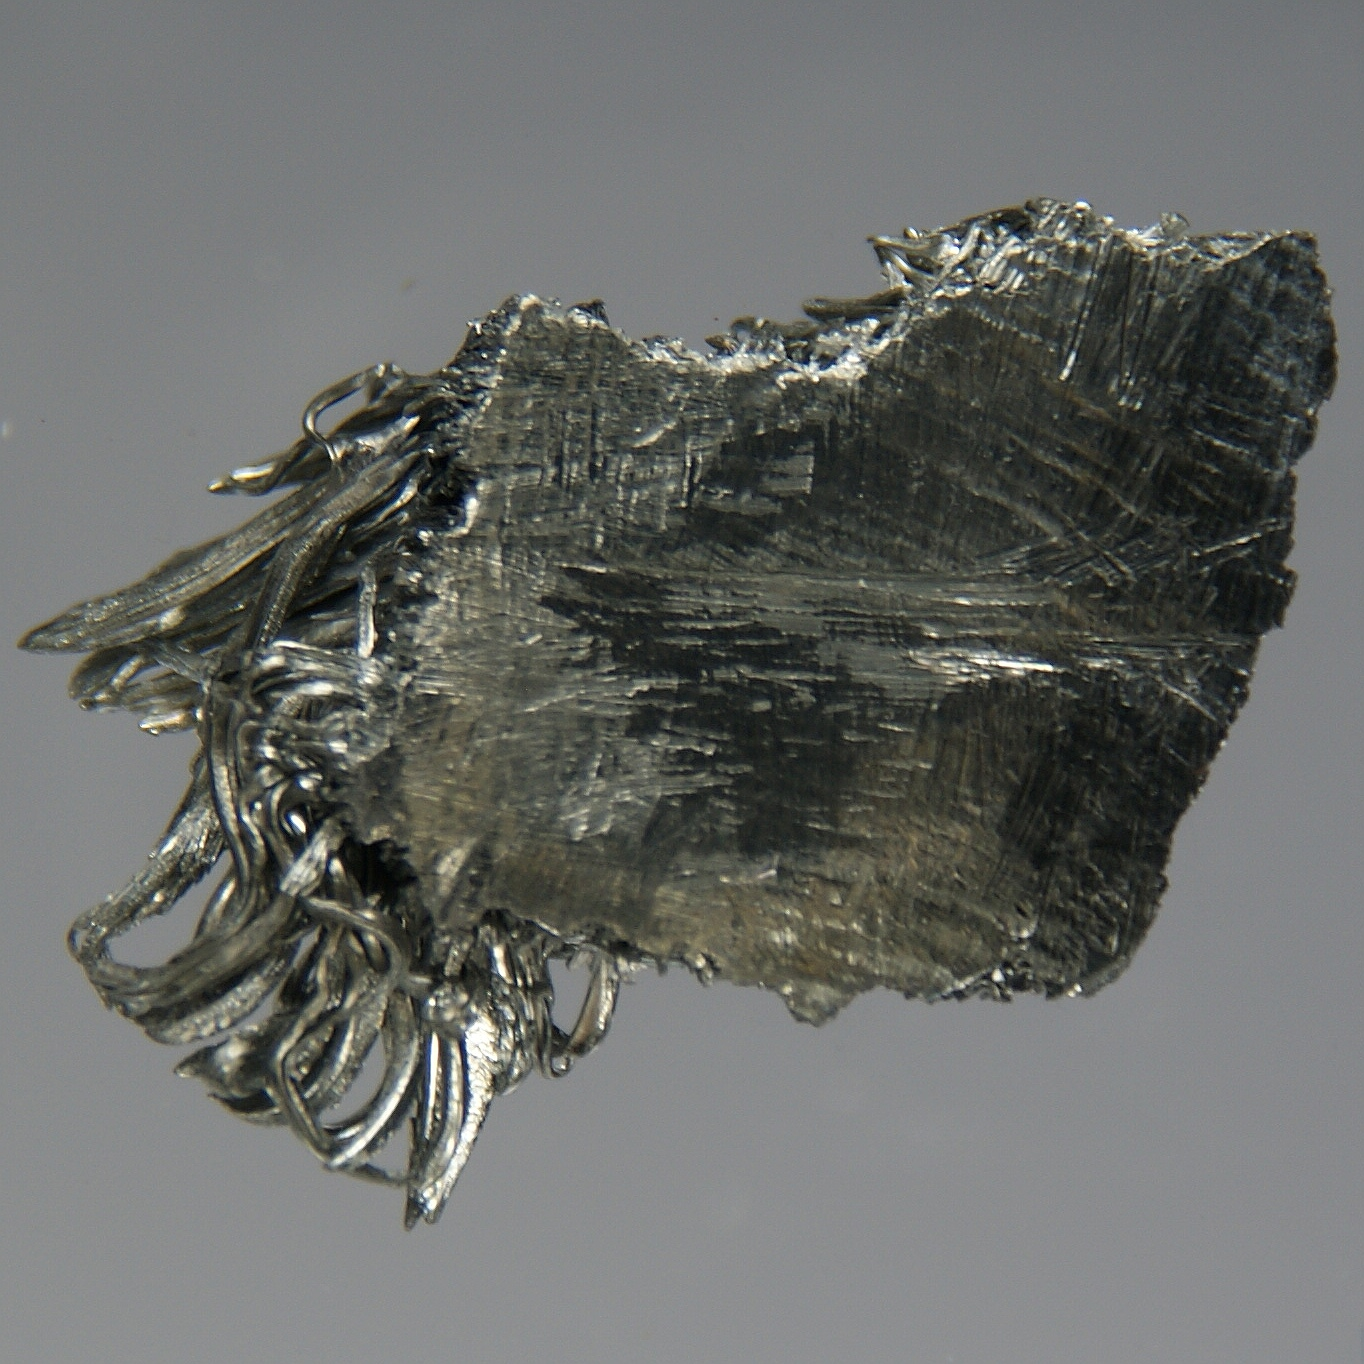 Hi-Res Images of Yttrium